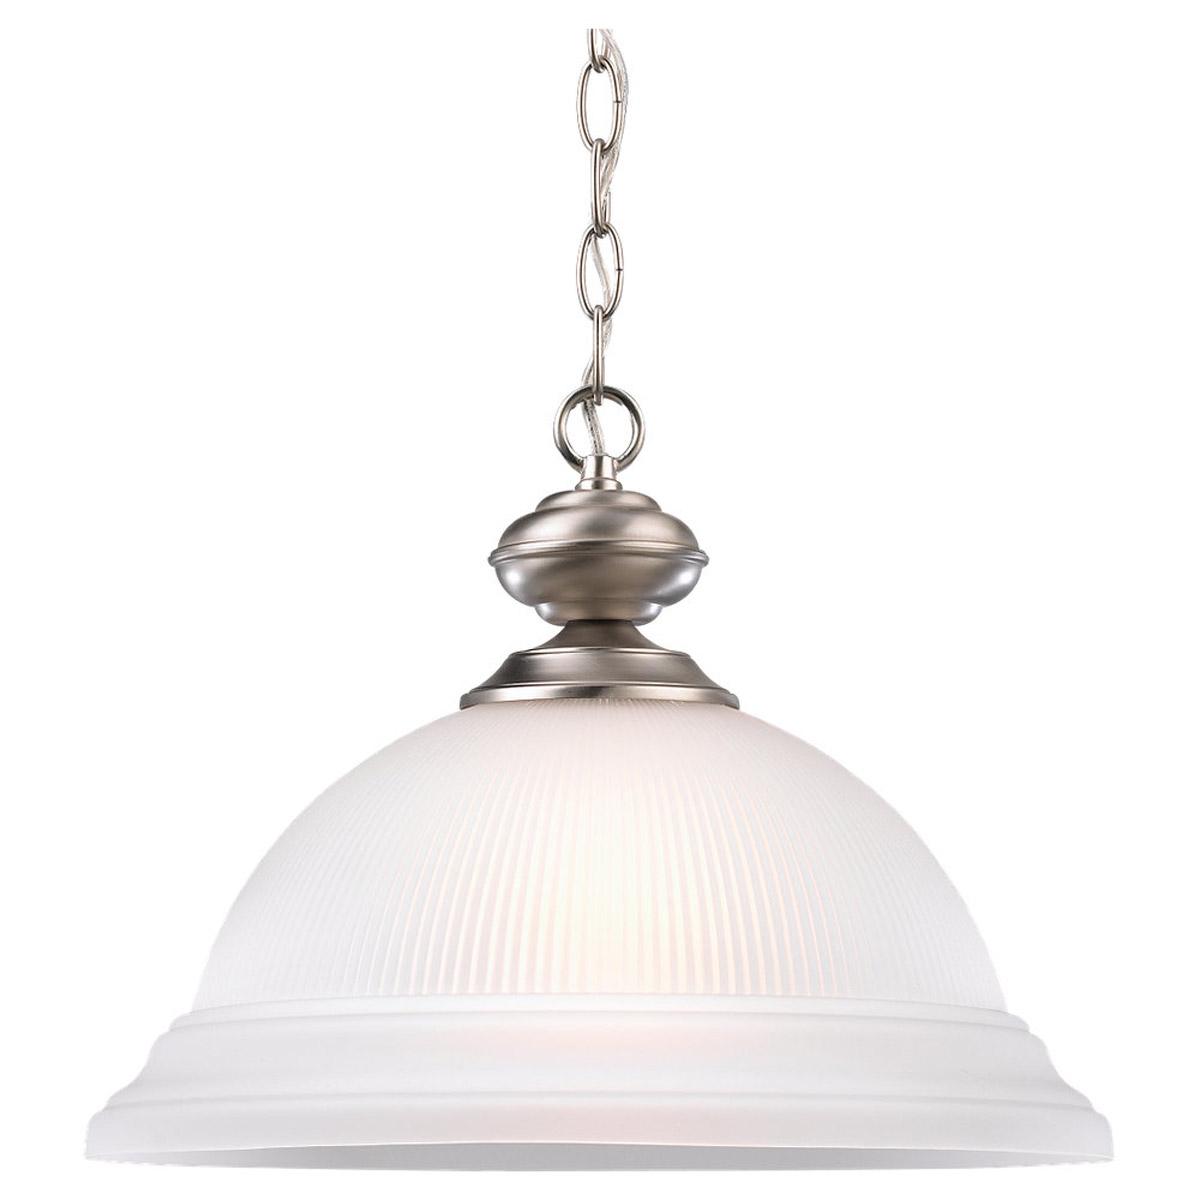 Sea Gull Lighting Mullica Hill 1 Light Pendant in Brushed Nickel 6640-962